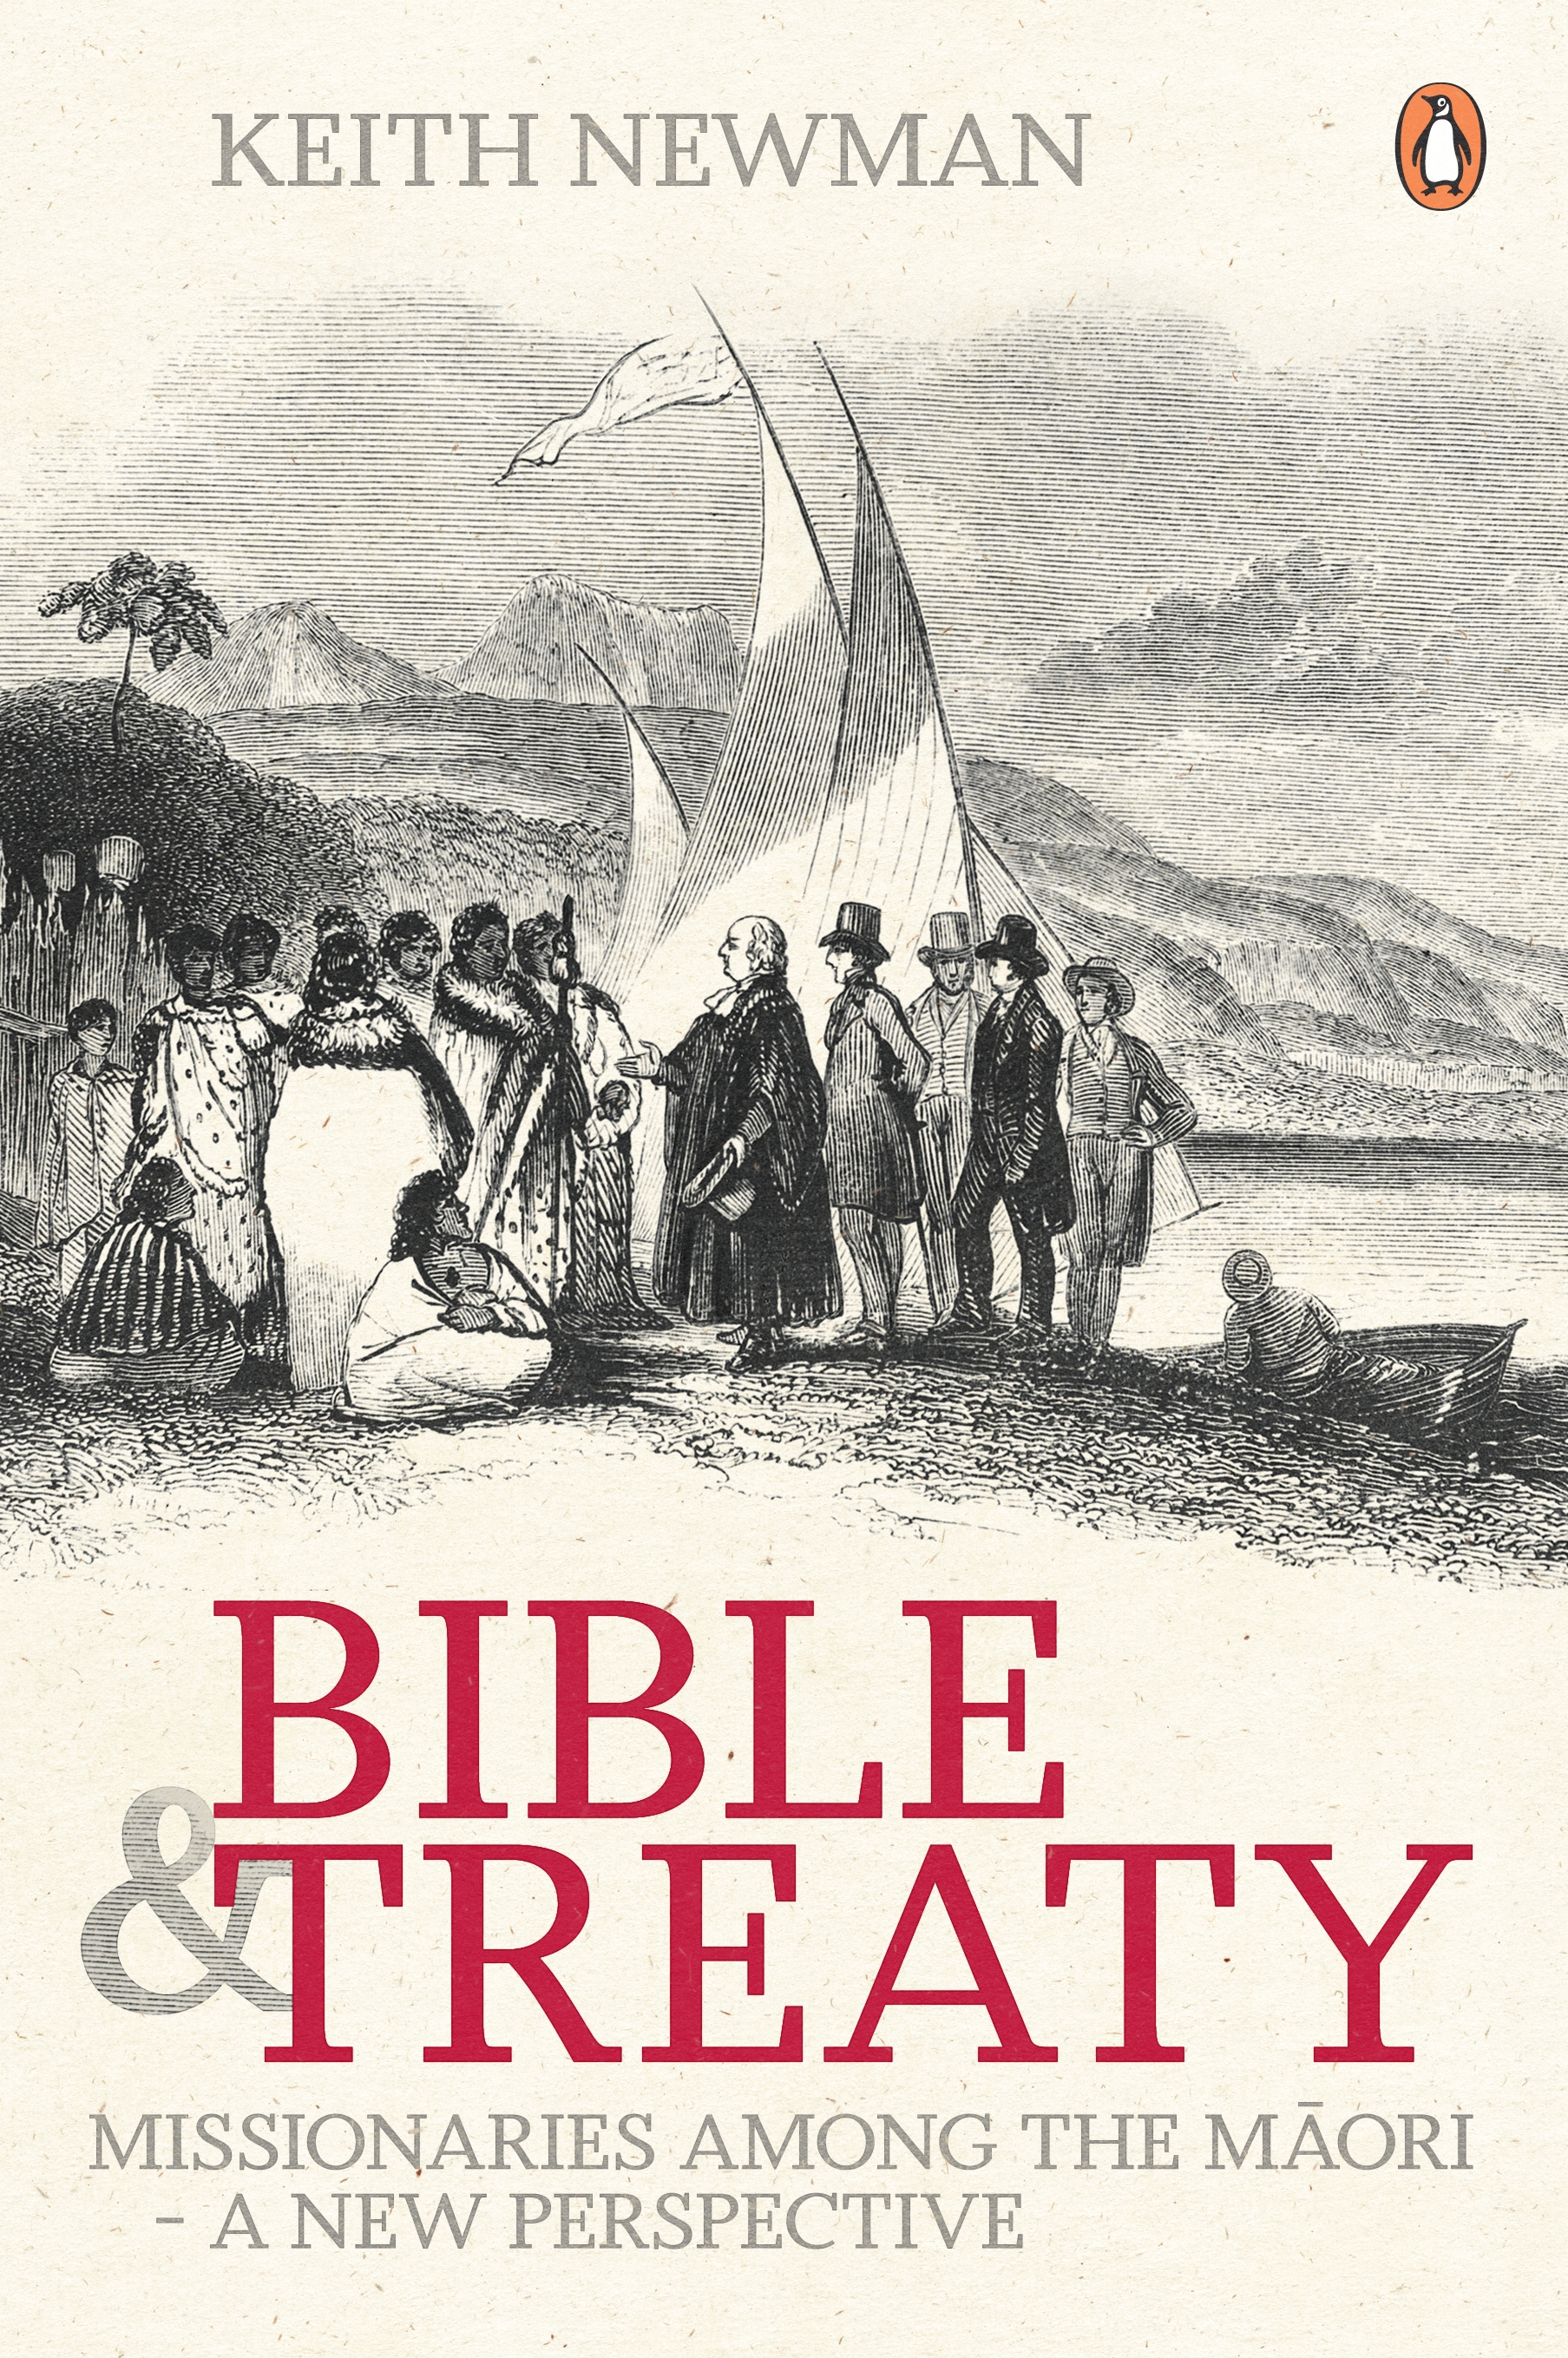 Book Covers Nz ~ Bible treaty missionaries among the maori a new